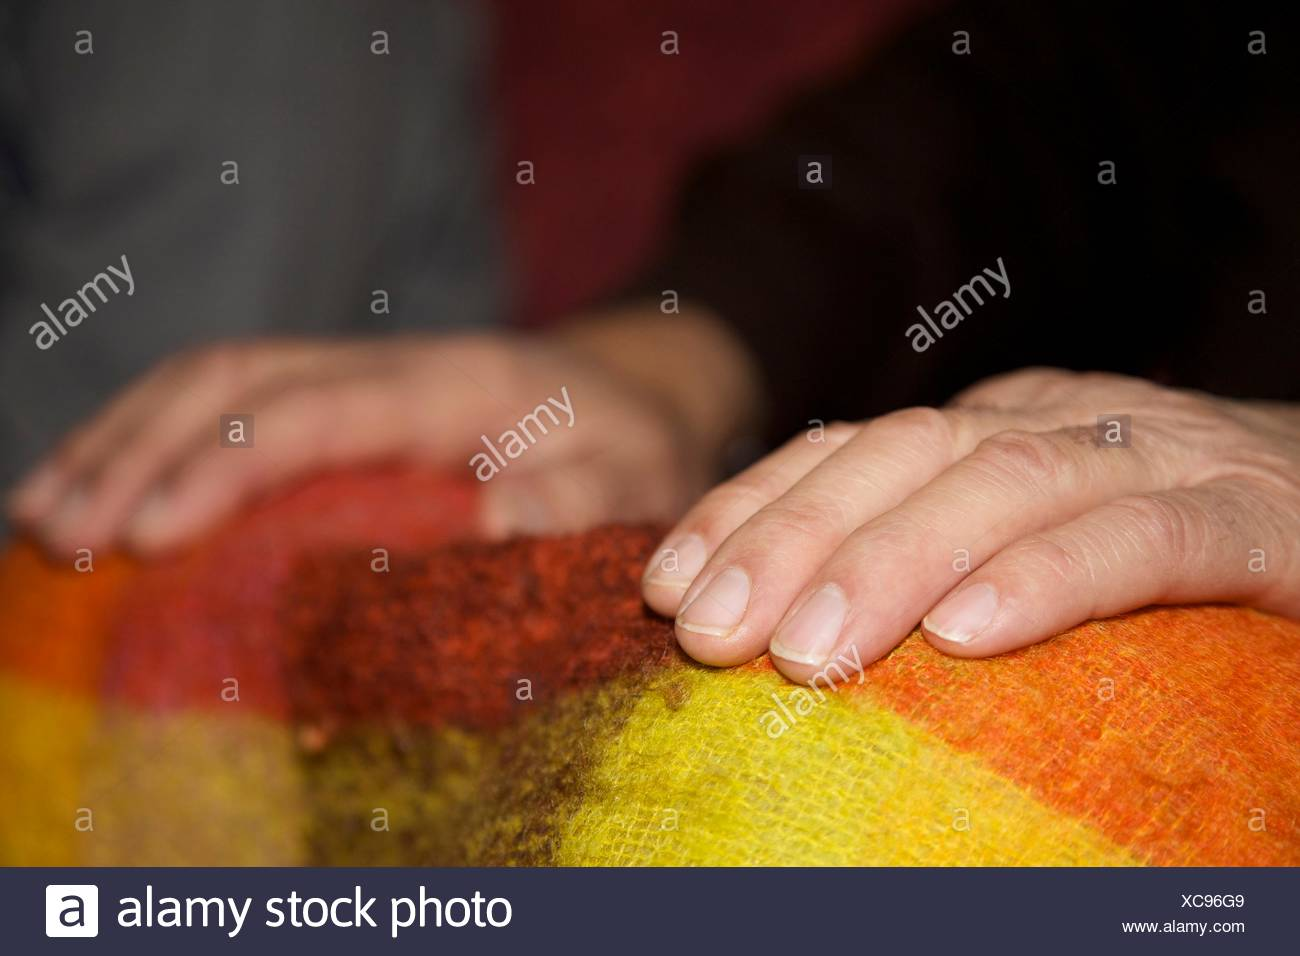 Cropped Image Of Man Hand On Duvet - Stock Image